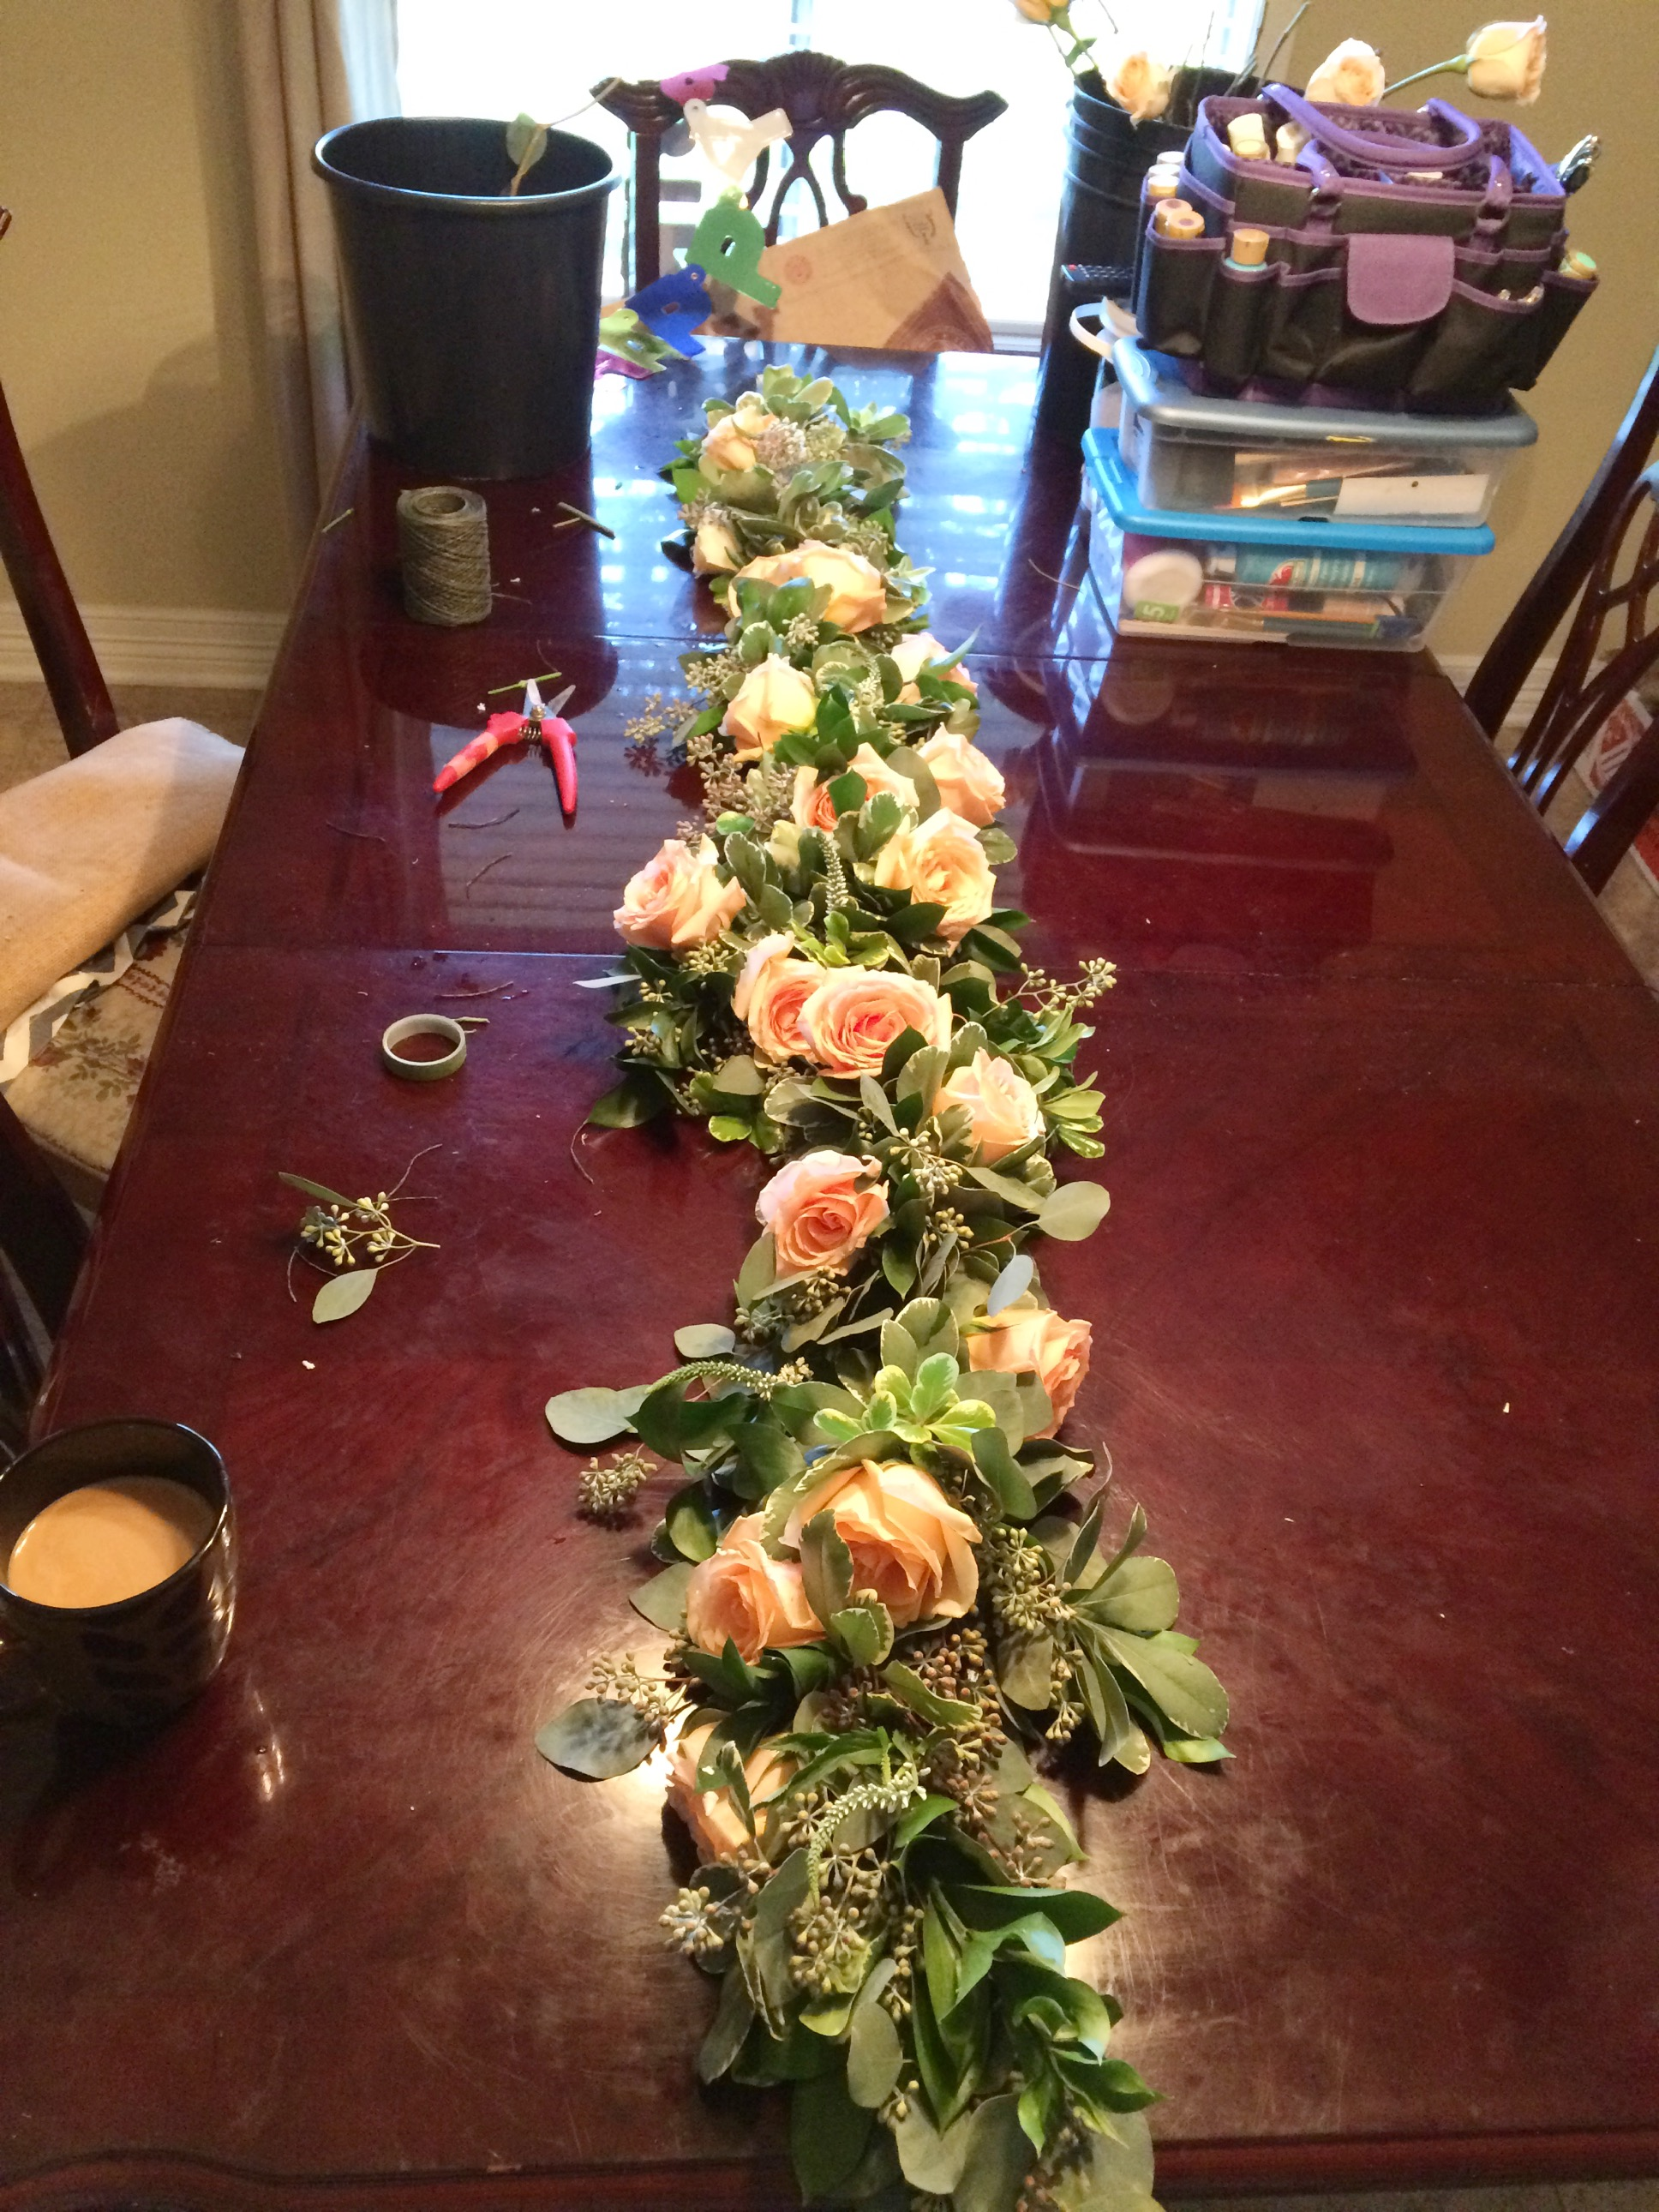 Garland with greens, caramel roses and white veronica